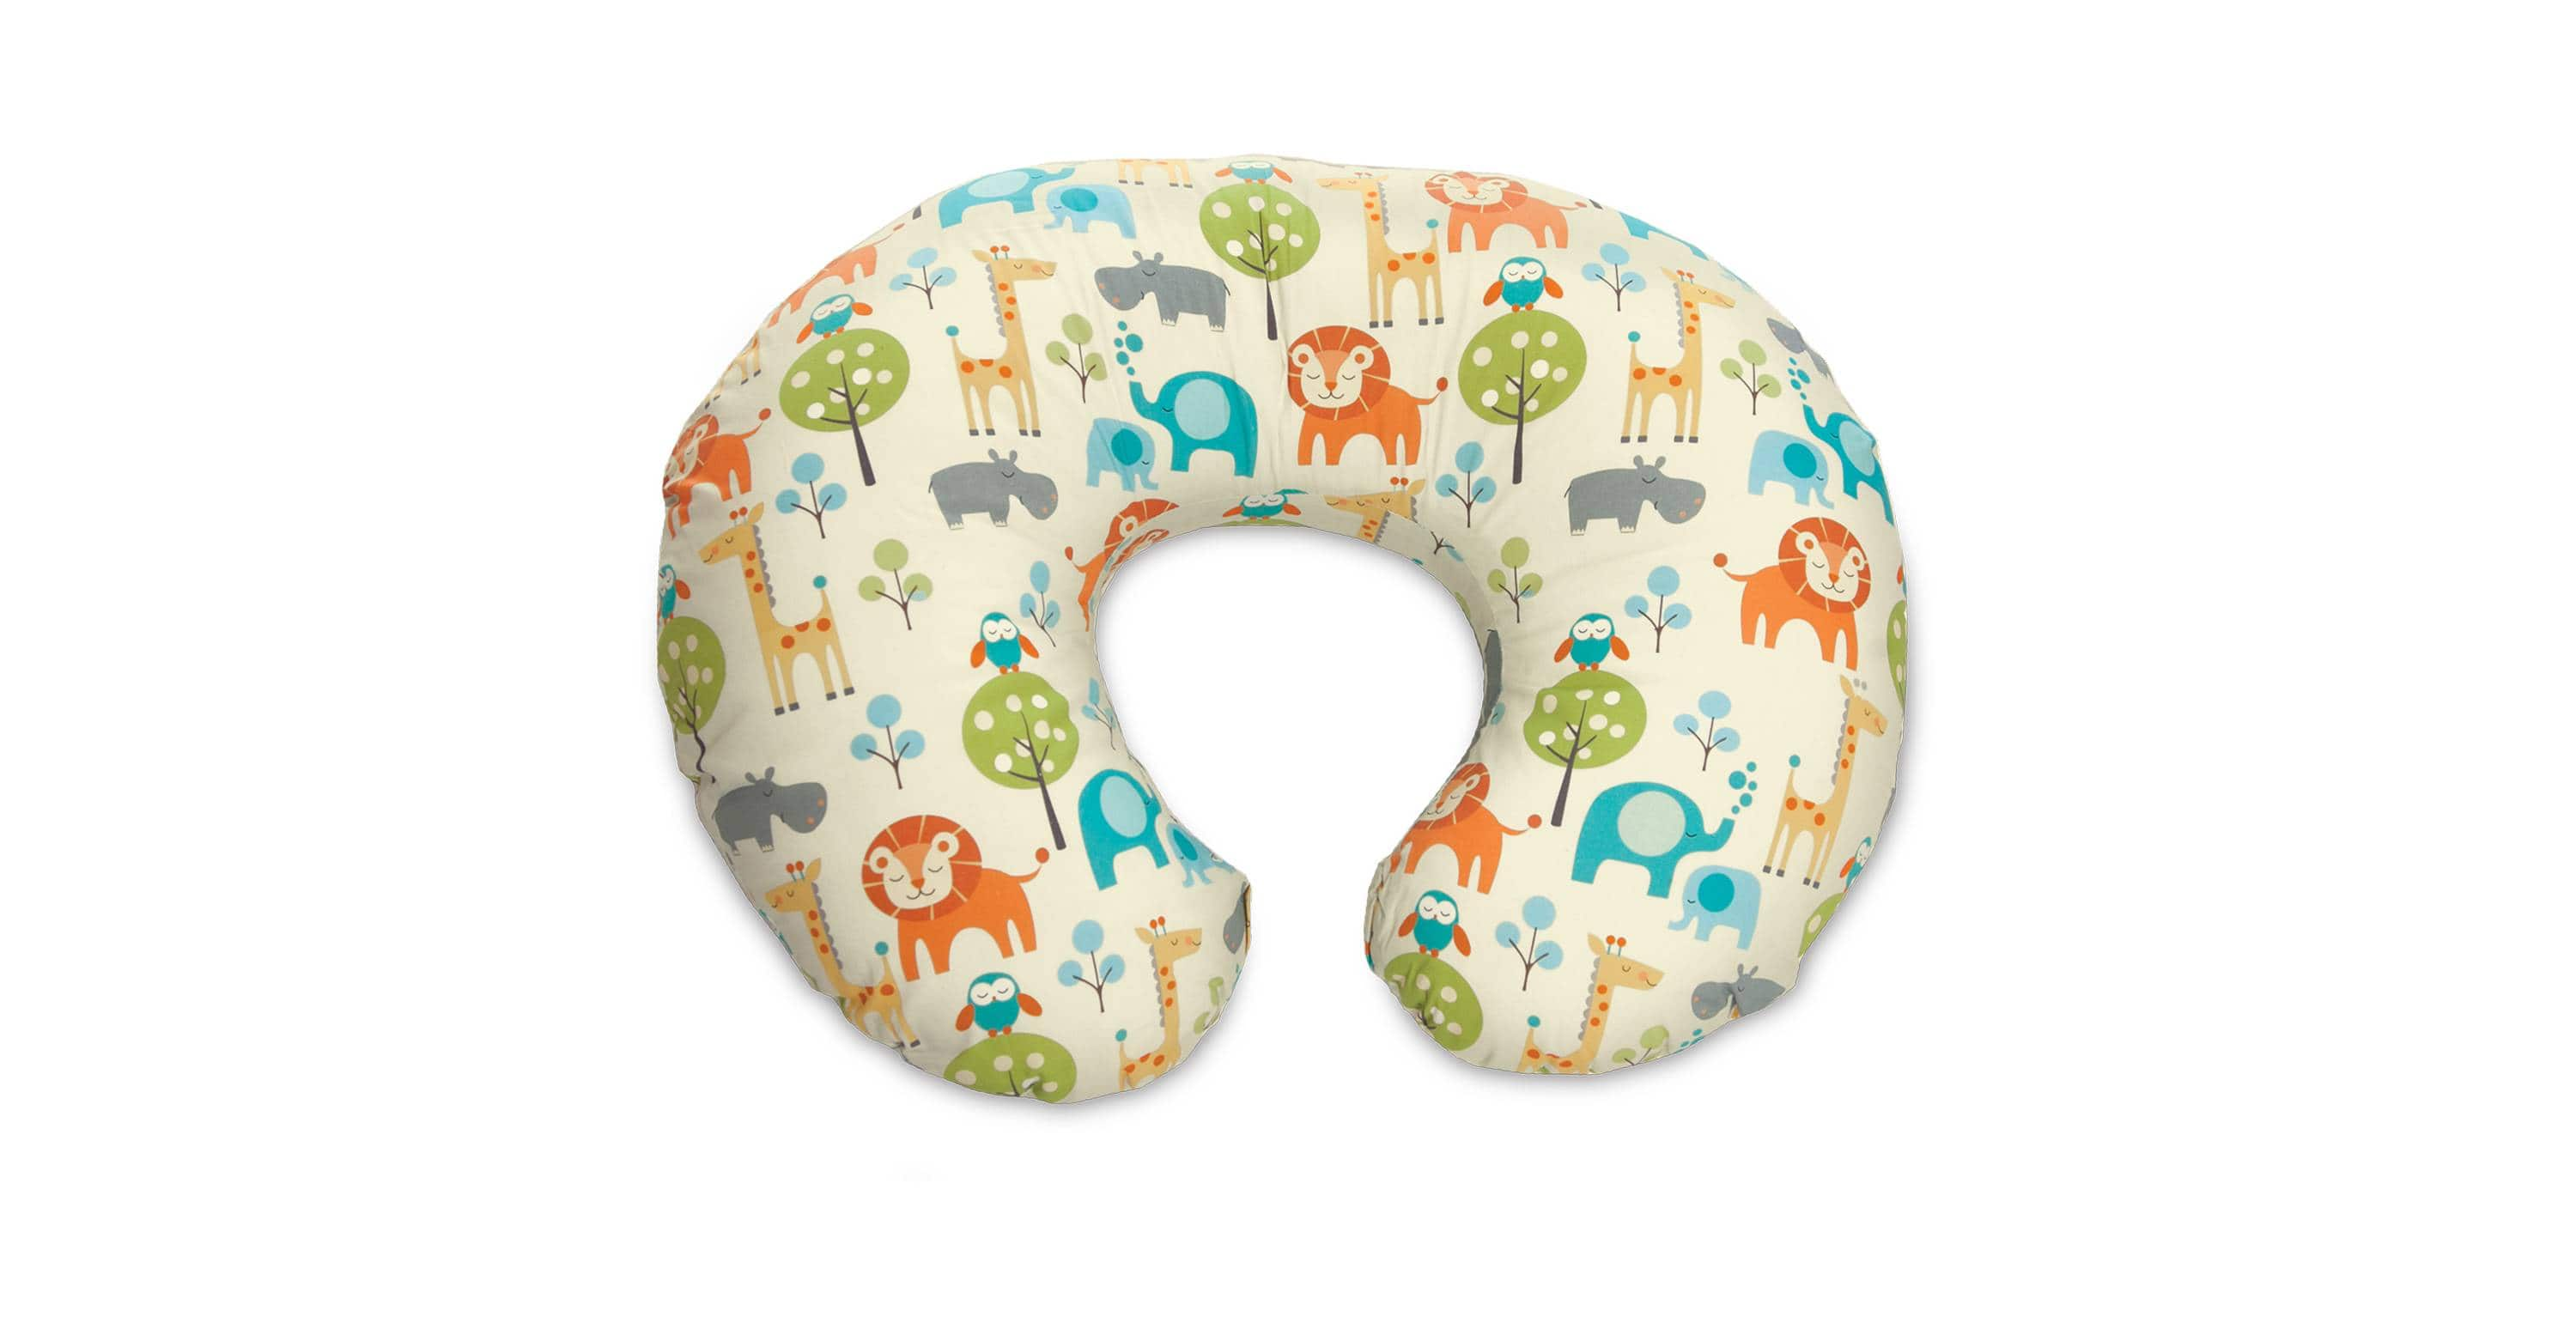 Boppy Pillow Peacefull Jungle Clearance @ Target B&M $19.98